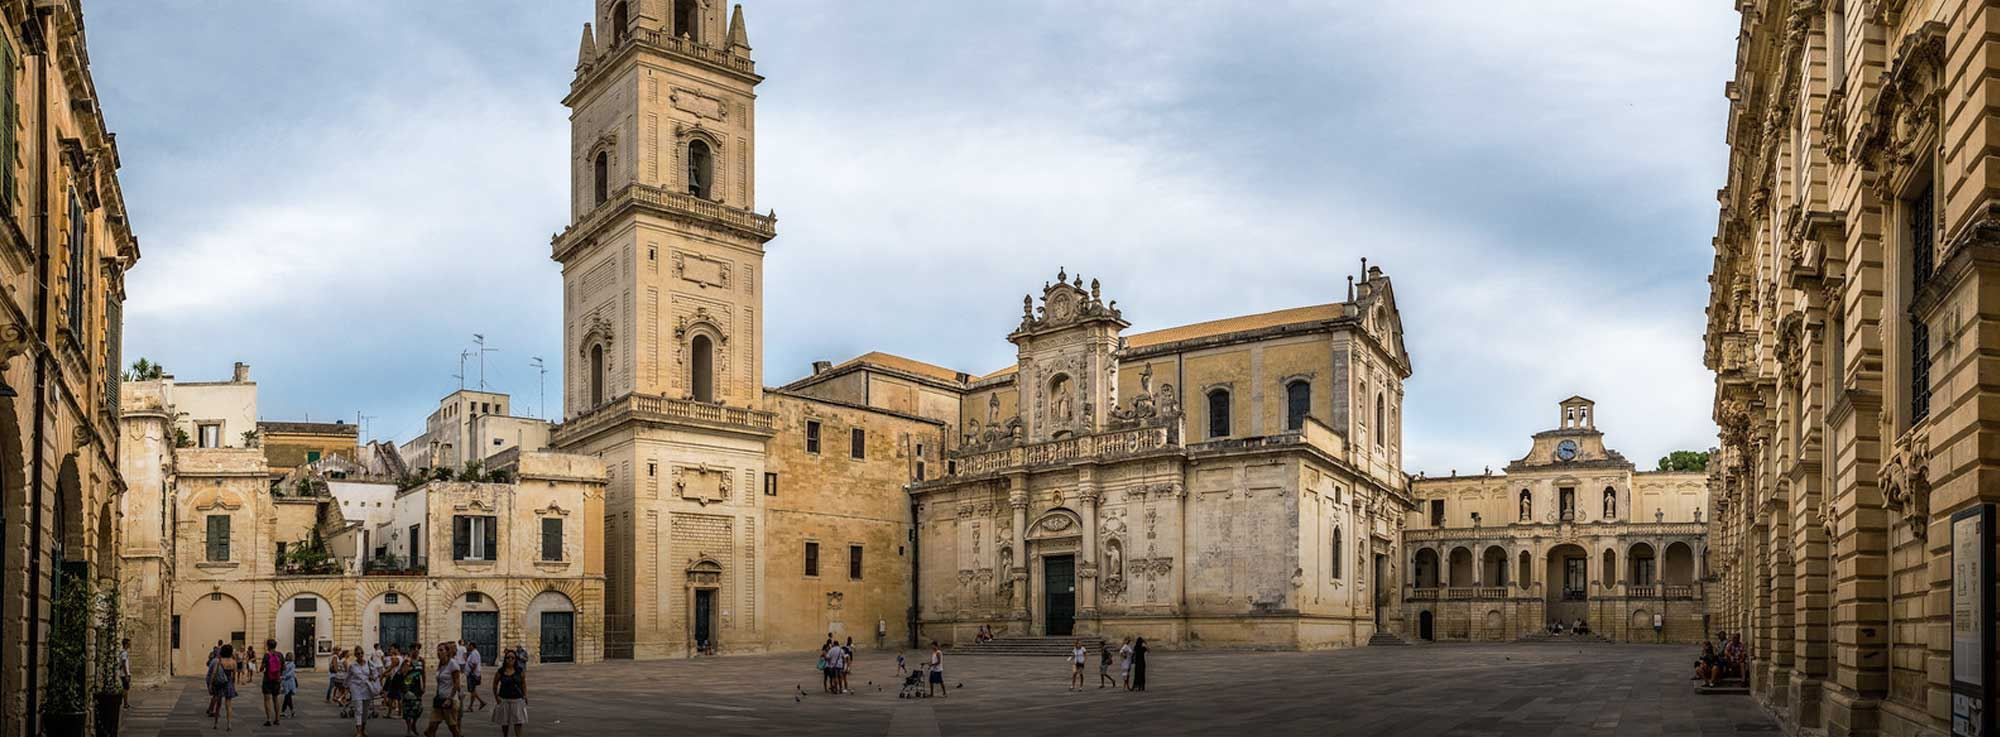 Lecce: Van Gogh - The immersive experience